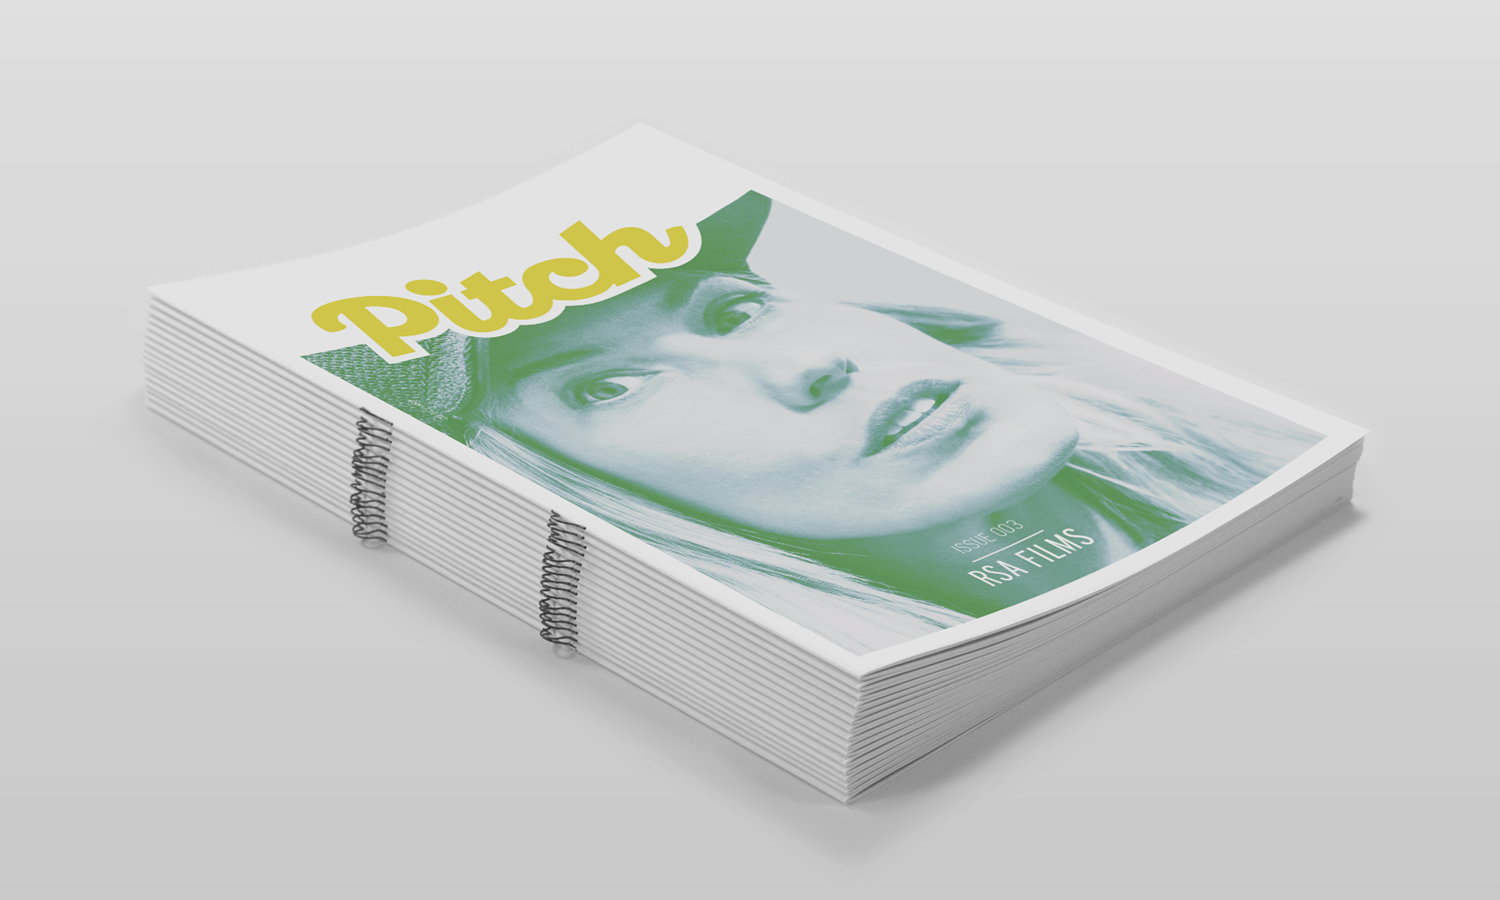 The Pitch fanzine advertising industry magazine RSA Films Issue